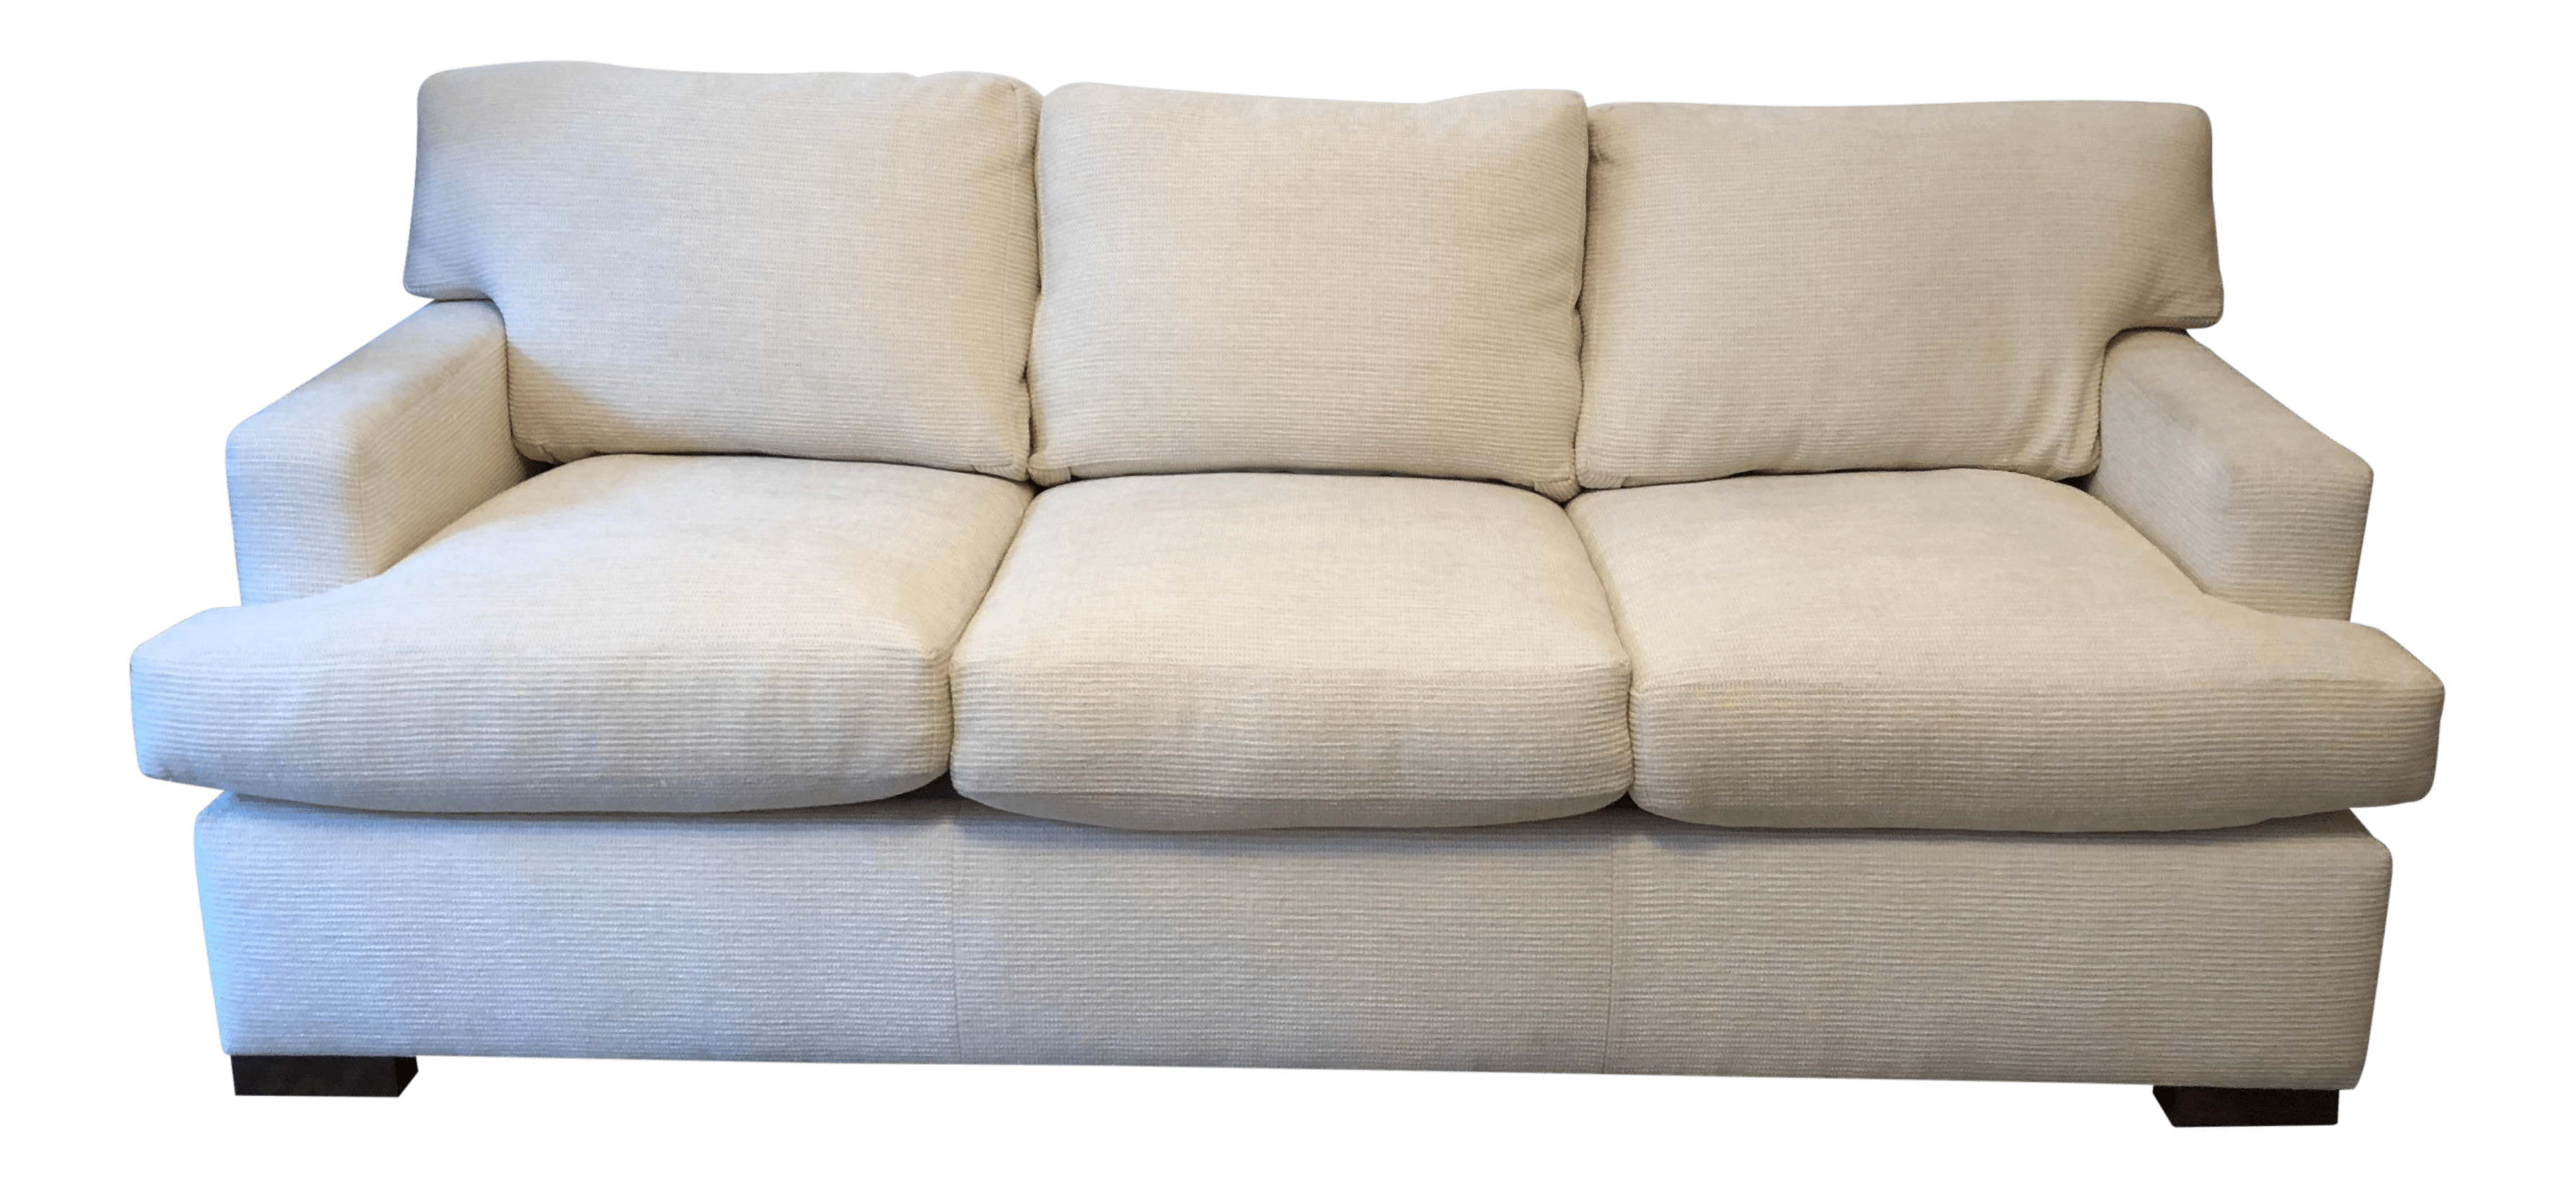 a rudin sofa 2859 corner with 2 chaises home and textiles queen sleeper 5rltm3uj